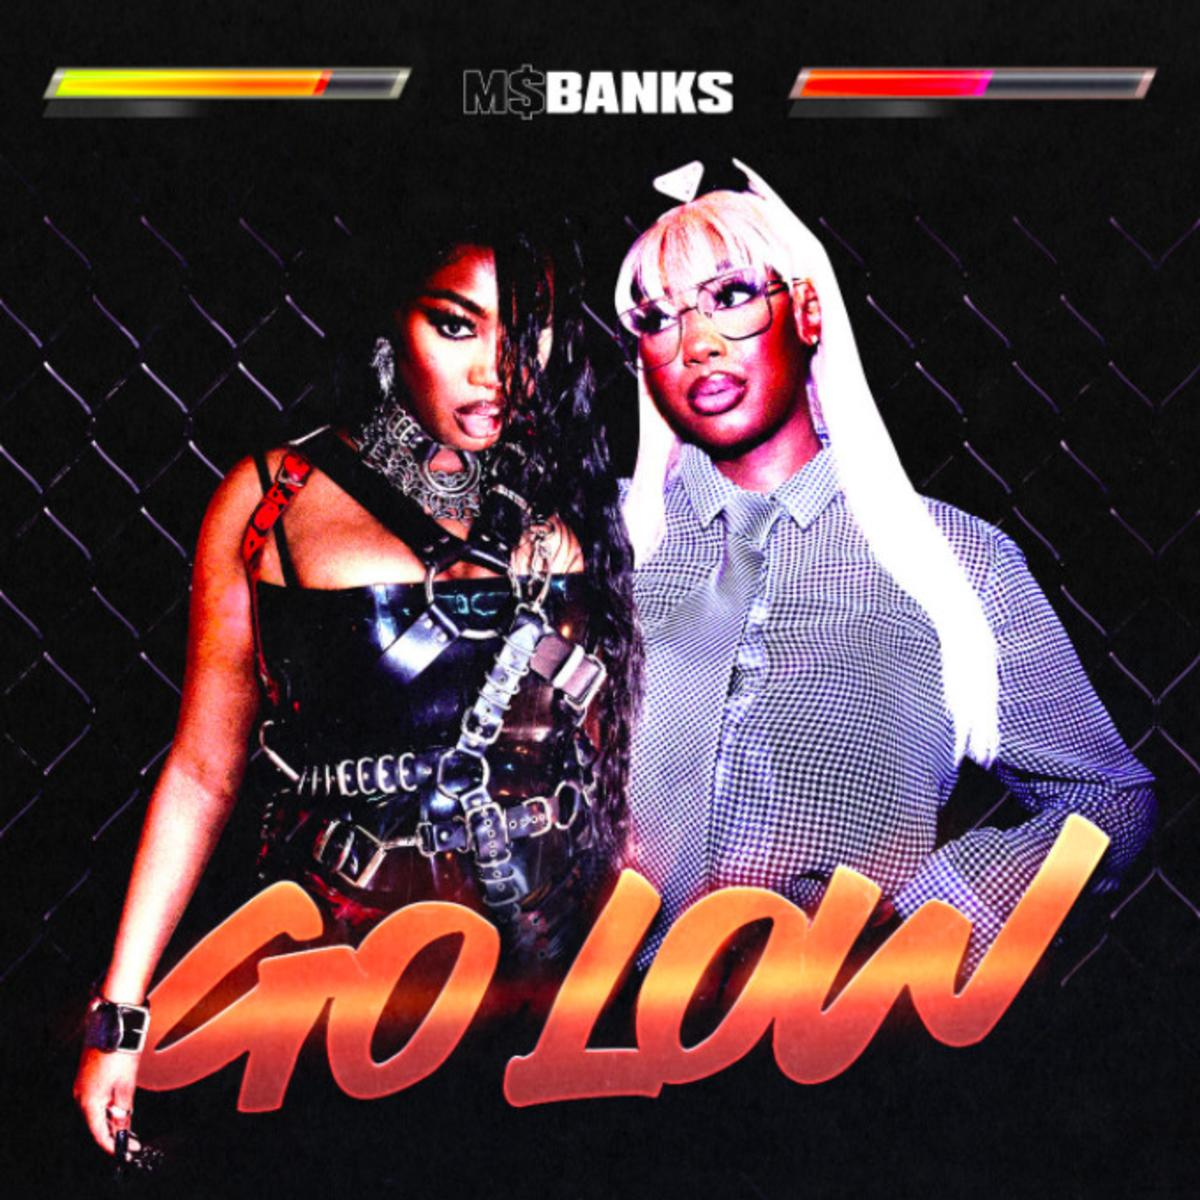 MP3: Ms. Banks - Go Low